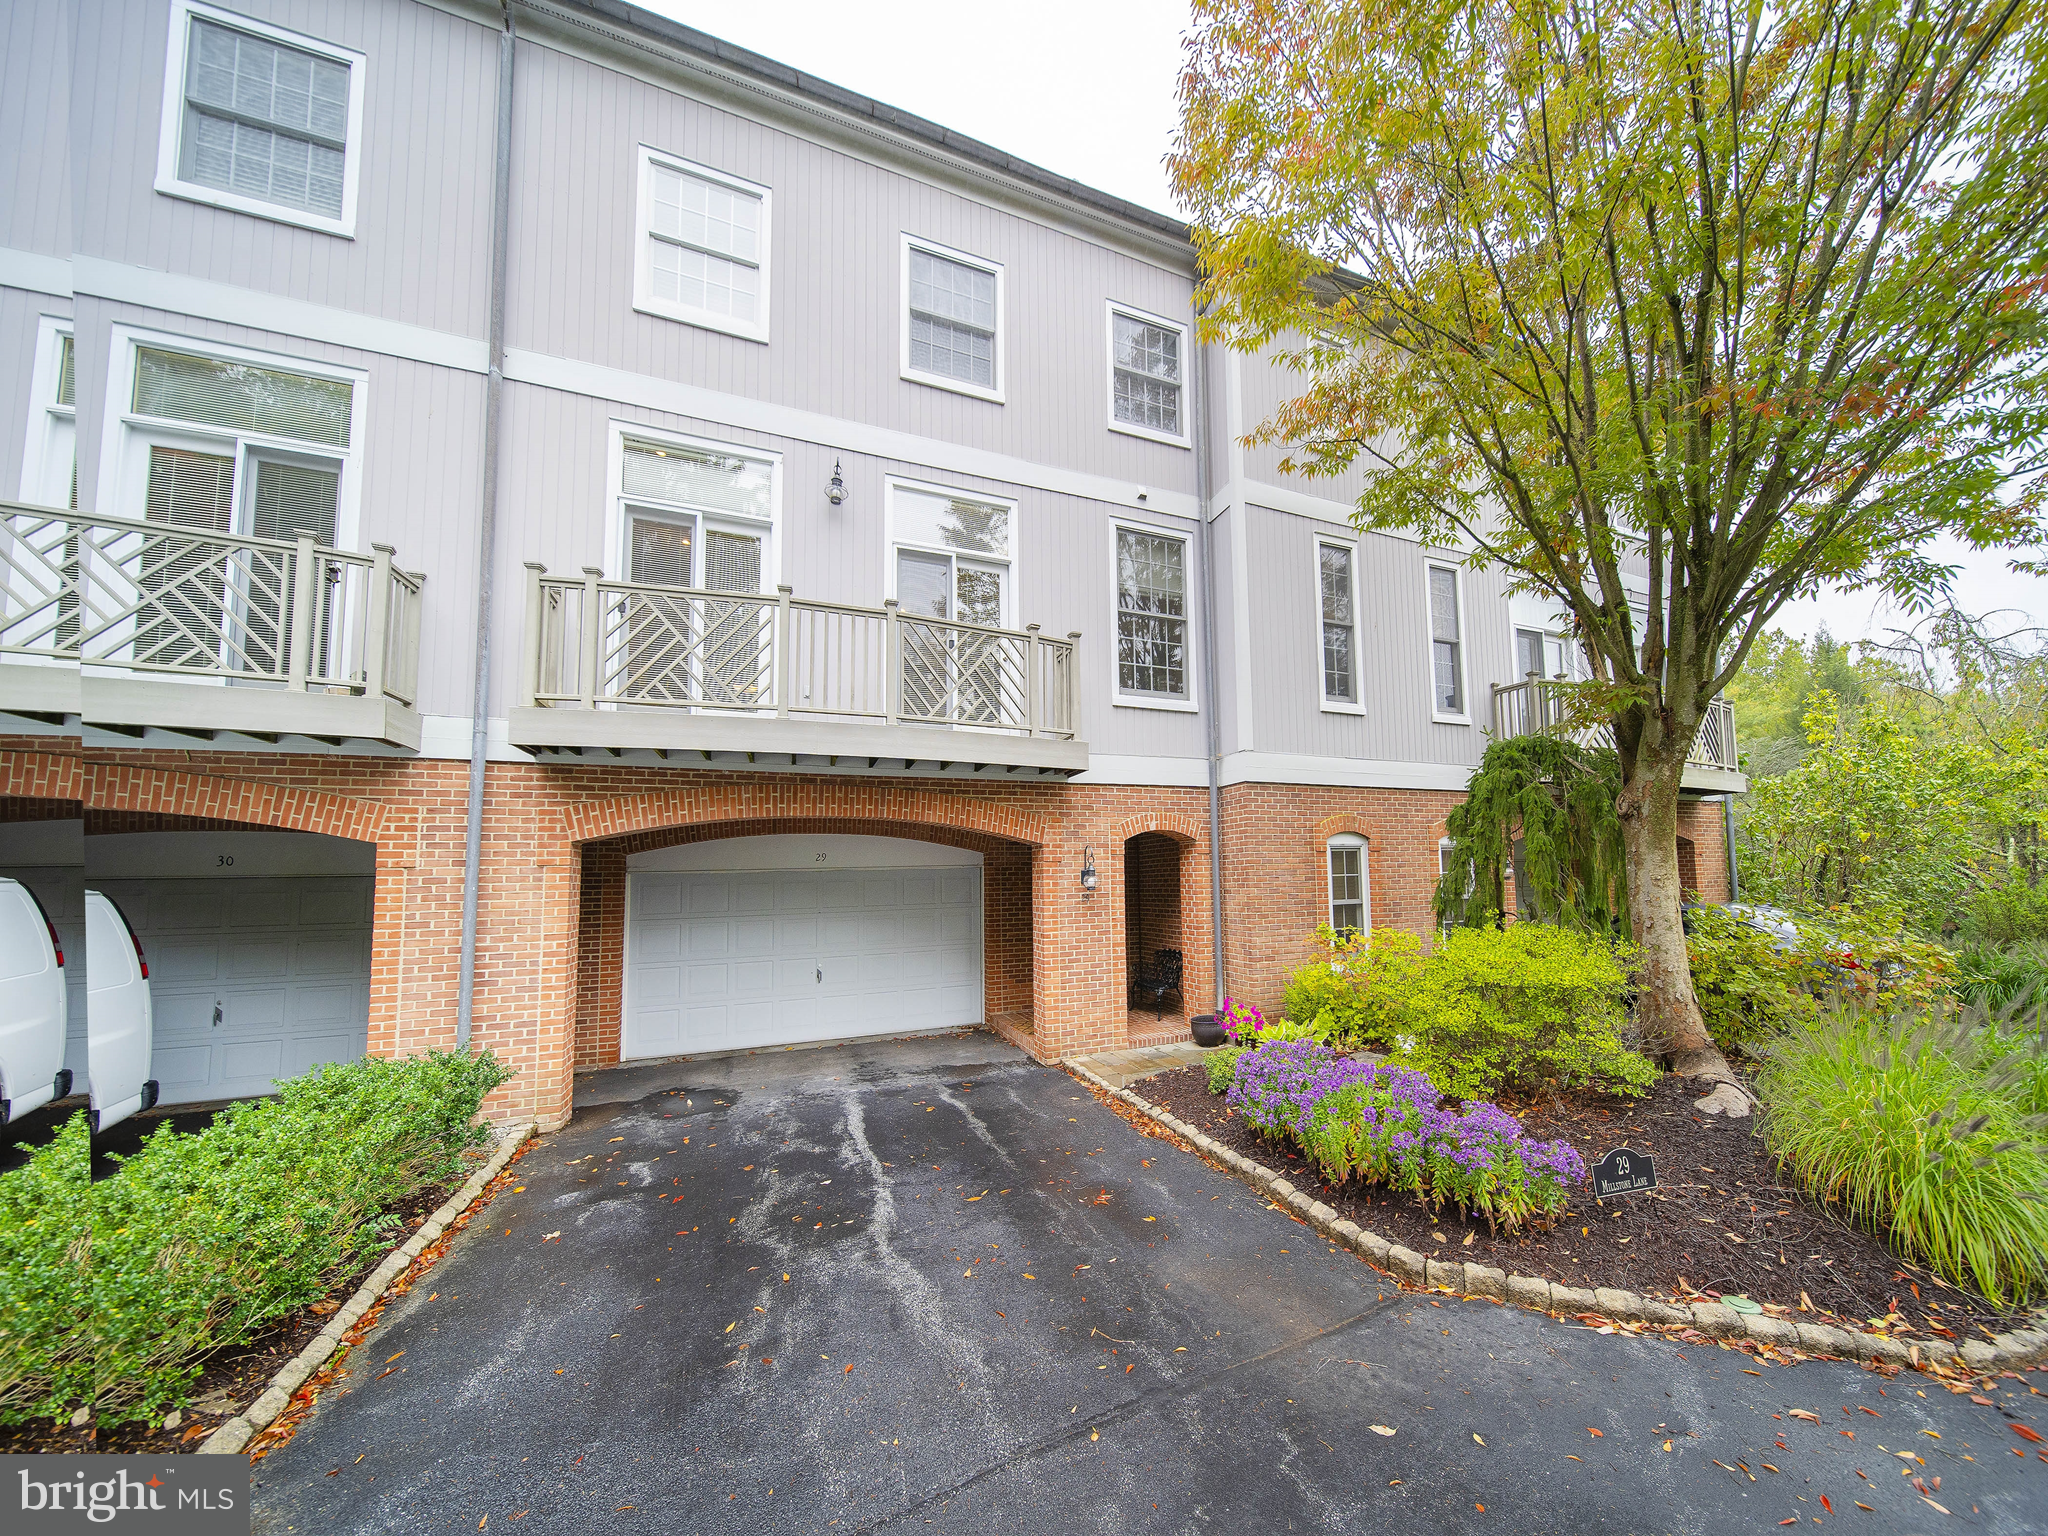 Totally remodeled 3 bedroom townhome condo located in the secure, gated community of Rockland Mills. Situated with direct views out onto the Brandywine River. First floor multi purpose room with newly installed full bathroom. On the second floor, an upscale newly redone kitchen with an adjacent breakfast nook, formal dining room leading to an attractive light filled great room with a wood burning fireplace and access onto rear deck. Upper floor laundry room plus 3 bedrooms, two baths and large walk in closet. Balcony off the primary bedroom with beautiful water views. Monthly fee includes water, sewer, trash, security, snow removal, ground maintenance, insurance management and building exteriors except for windows and doors.